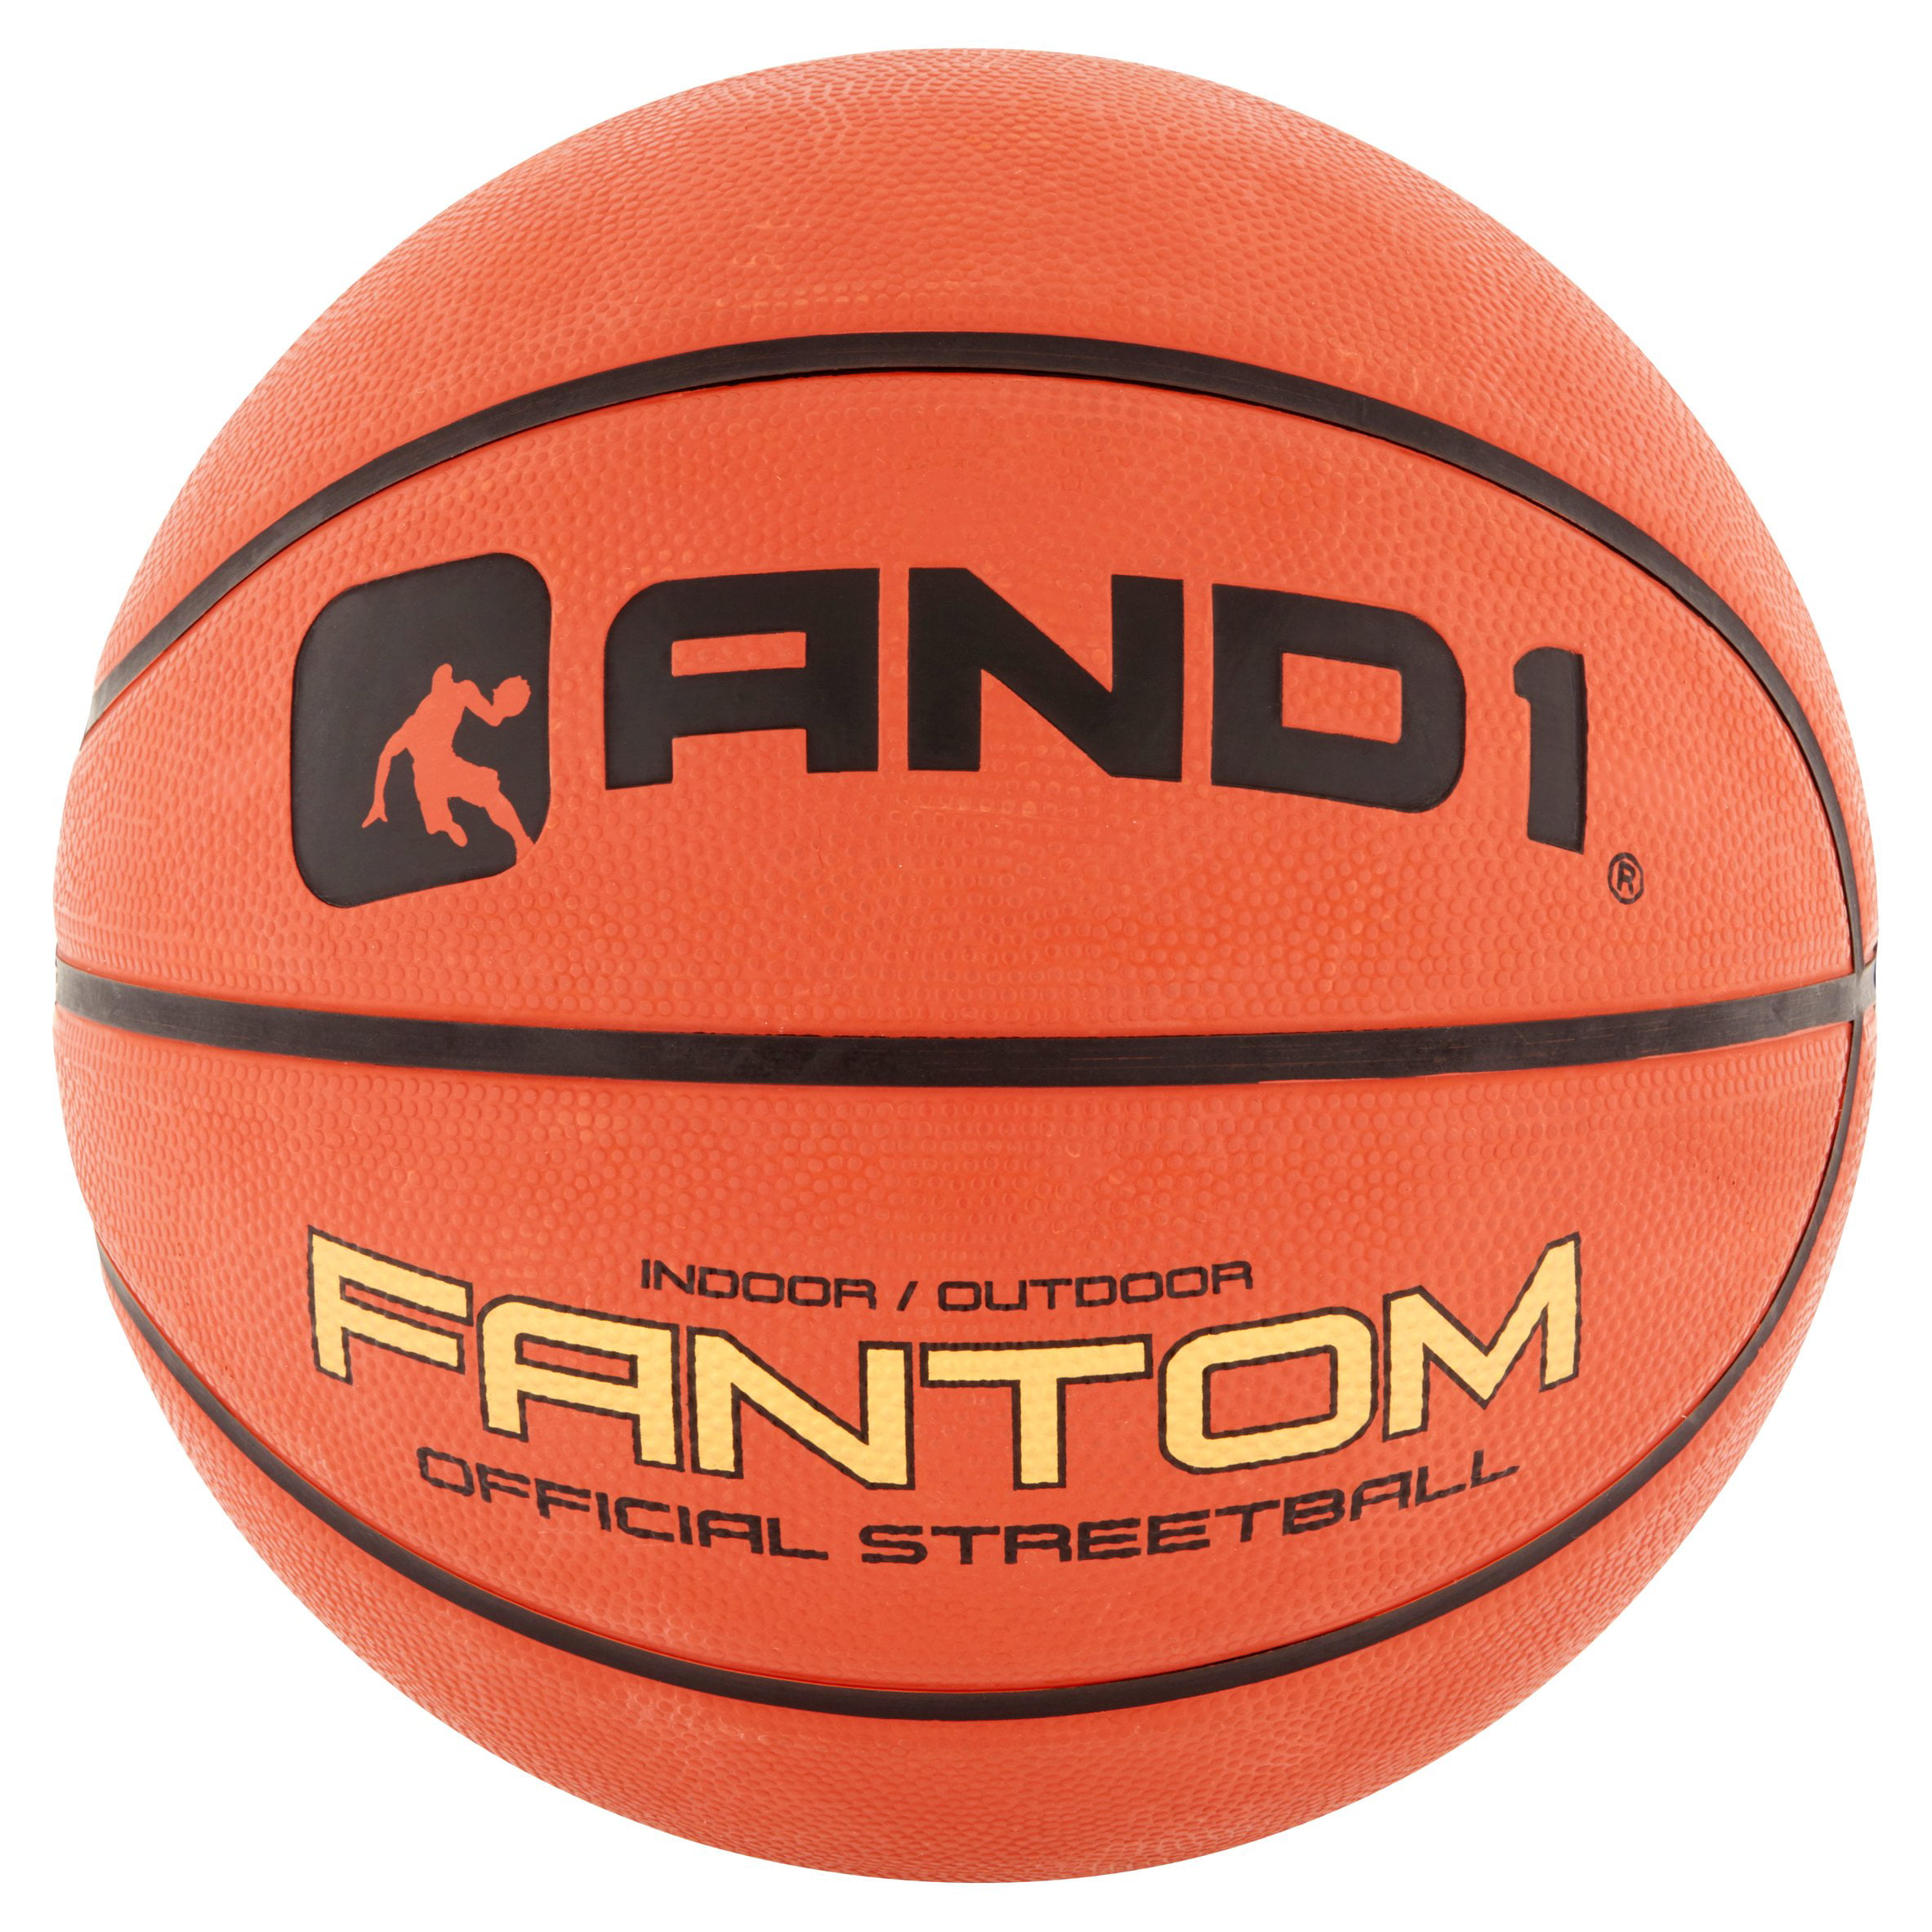 And1 Fantom Official Streetball